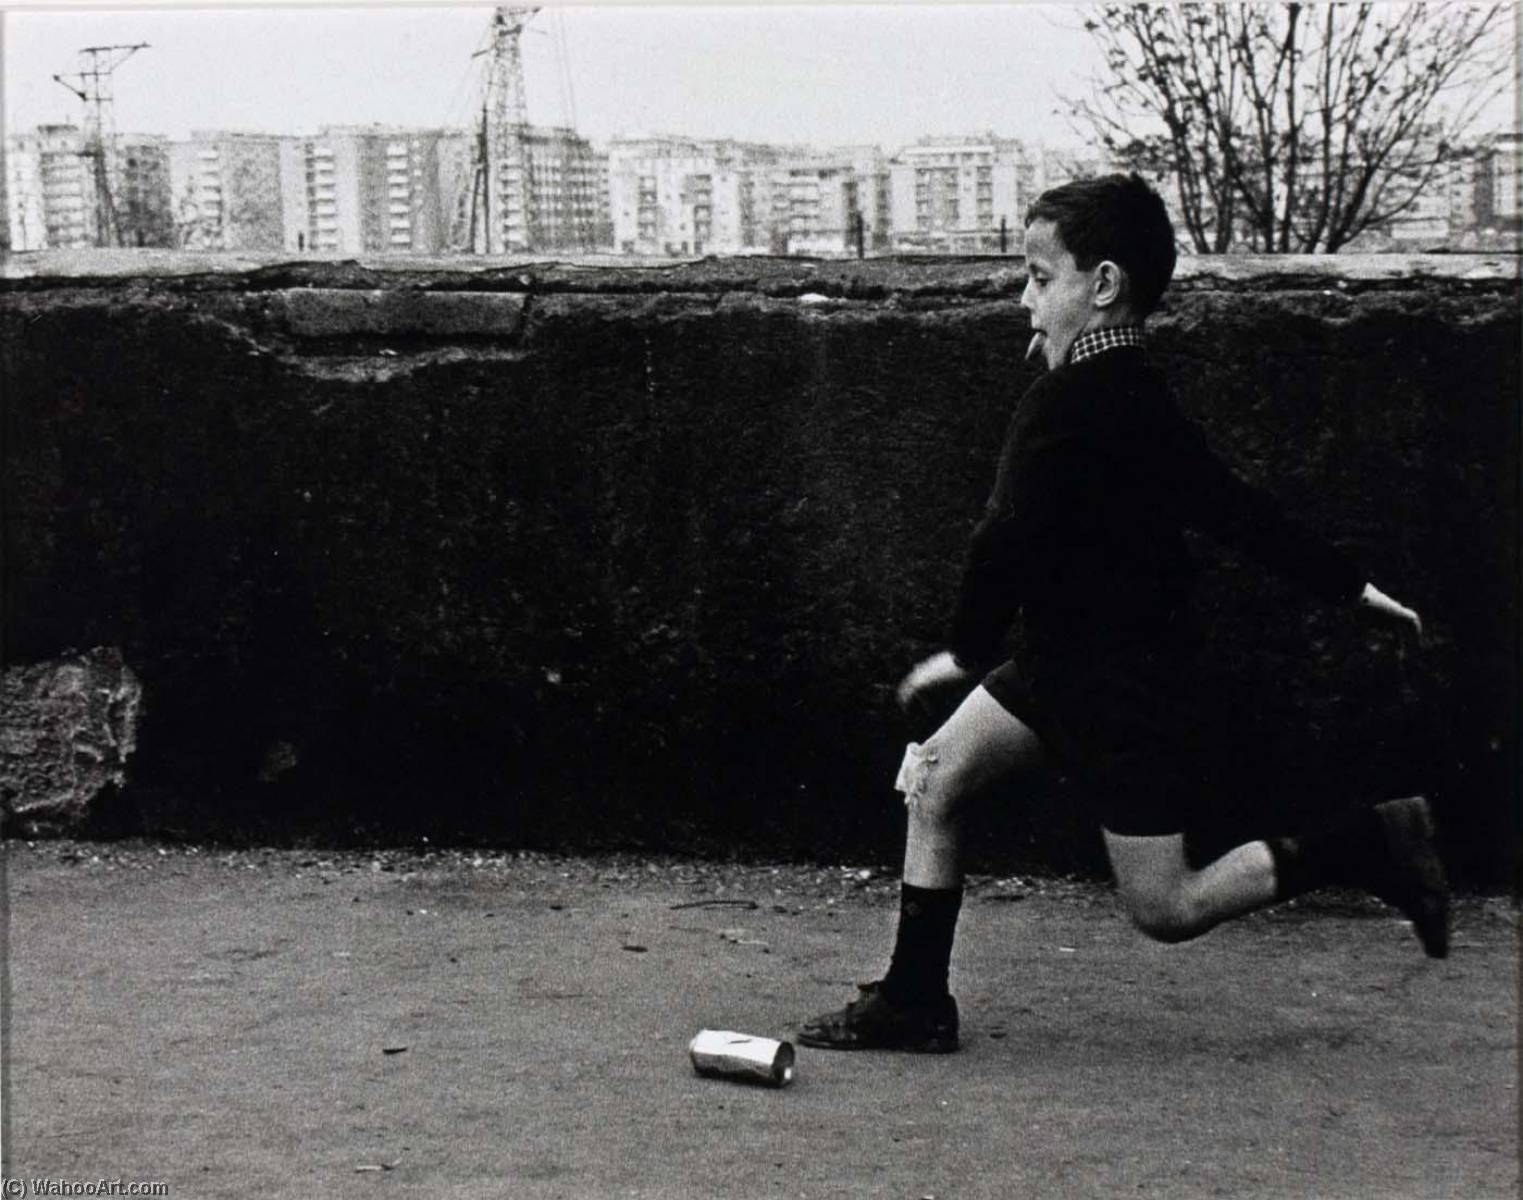 Rome (running boy kicking can), Print by Jeffrey Blankfort